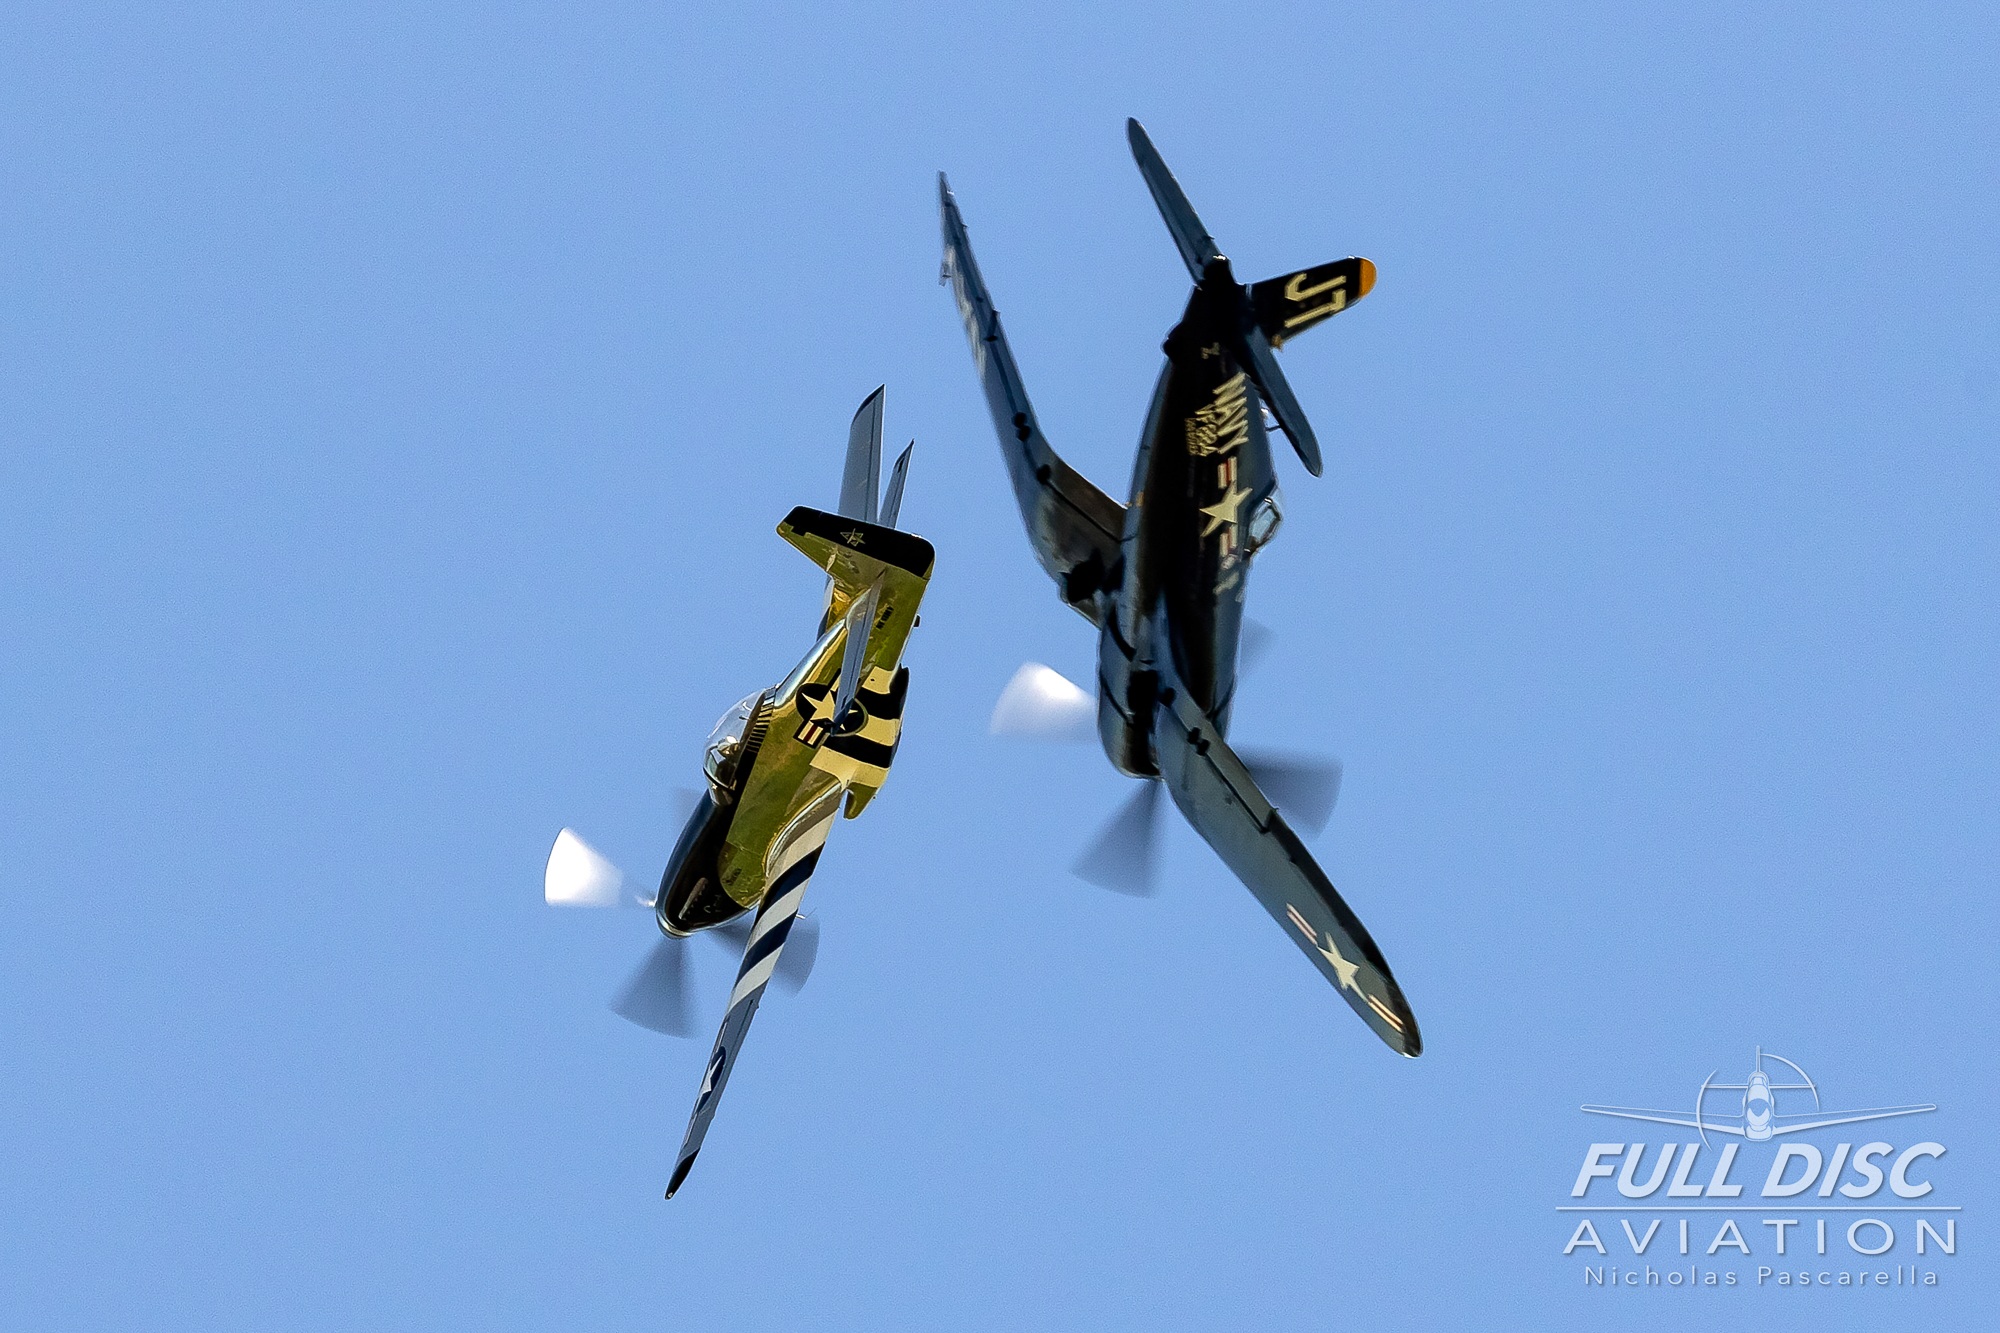 break_classof45_mcasbeaufort_nicholaspascarella_fulldiscavation_aviation_airshow.jpg